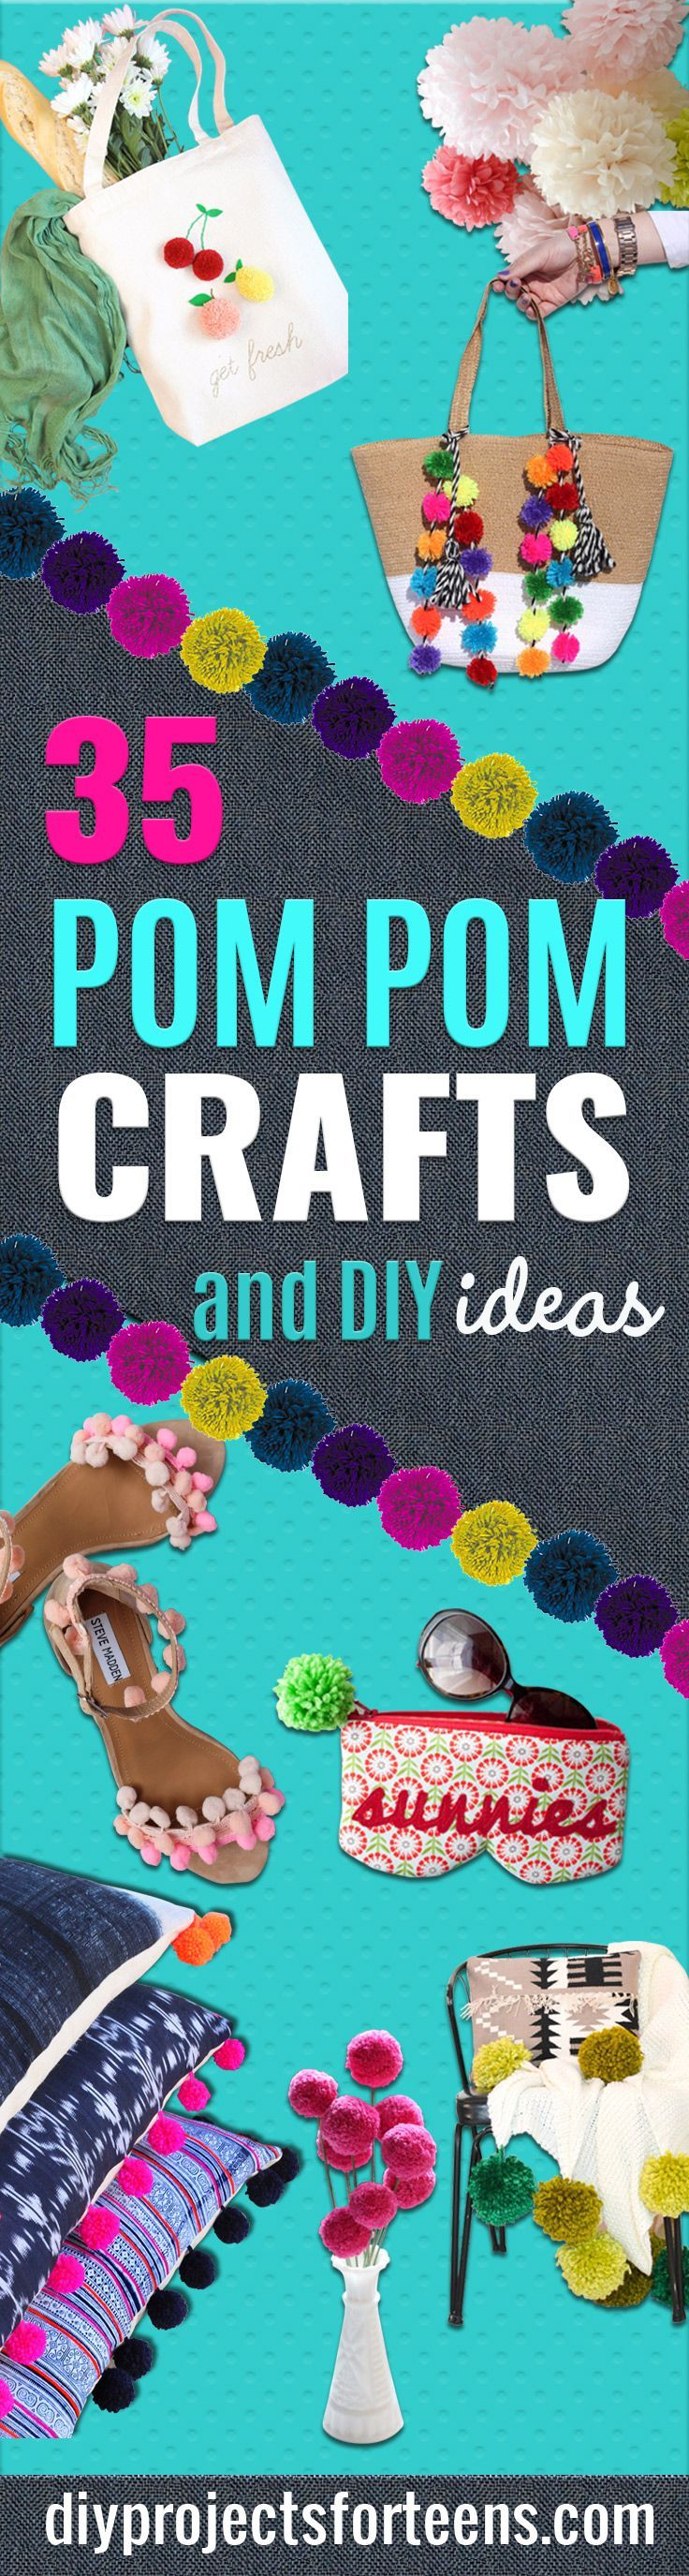 DIY Crafts with Pom Poms - Fun Yarn Pom Pom Crafts Ideas. Garlands, Rug and Hat Tutorials, Easy Pom Pom Projects for Your Room Decor and Gifts http://diyprojectsforteens.com/diy-crafts-pom-poms